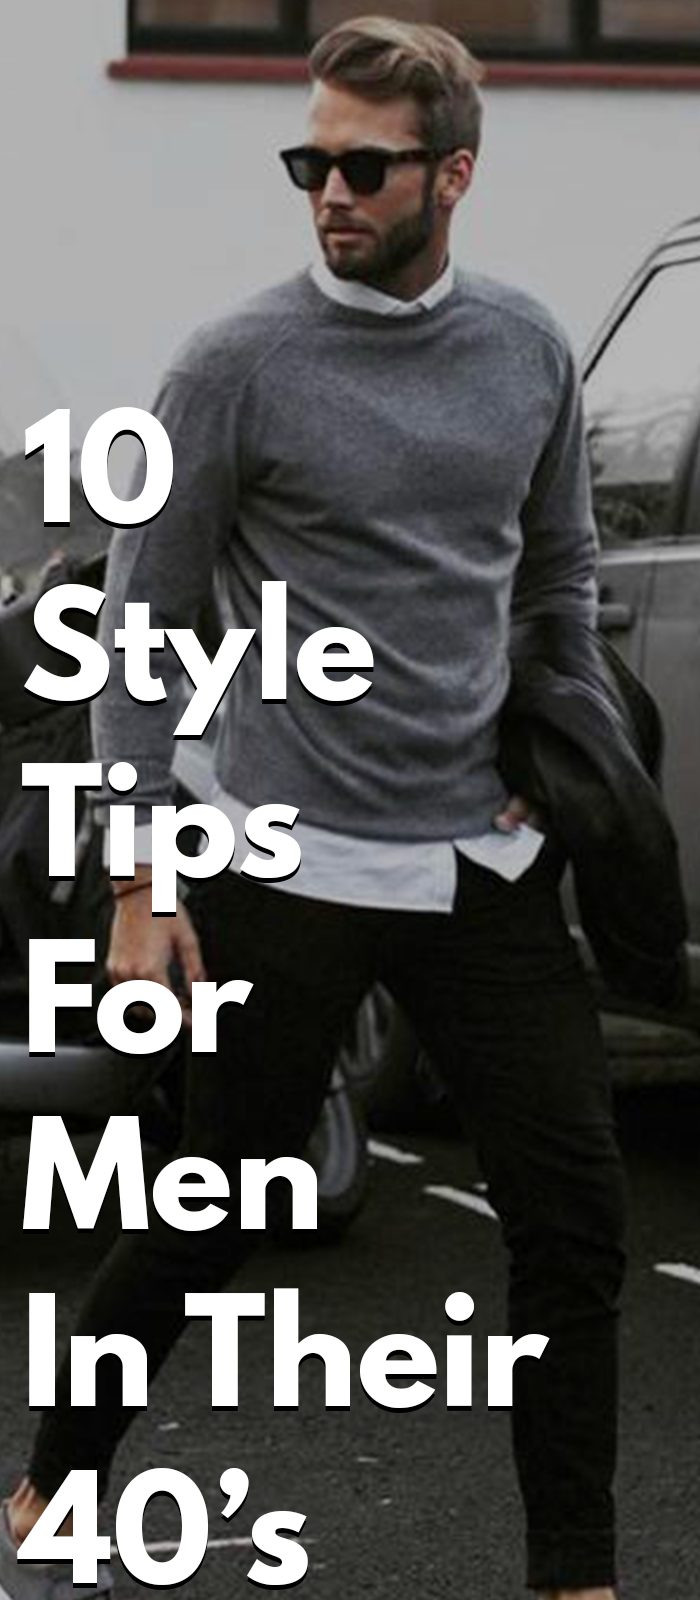 10 Style Tip For Men In Their 40's